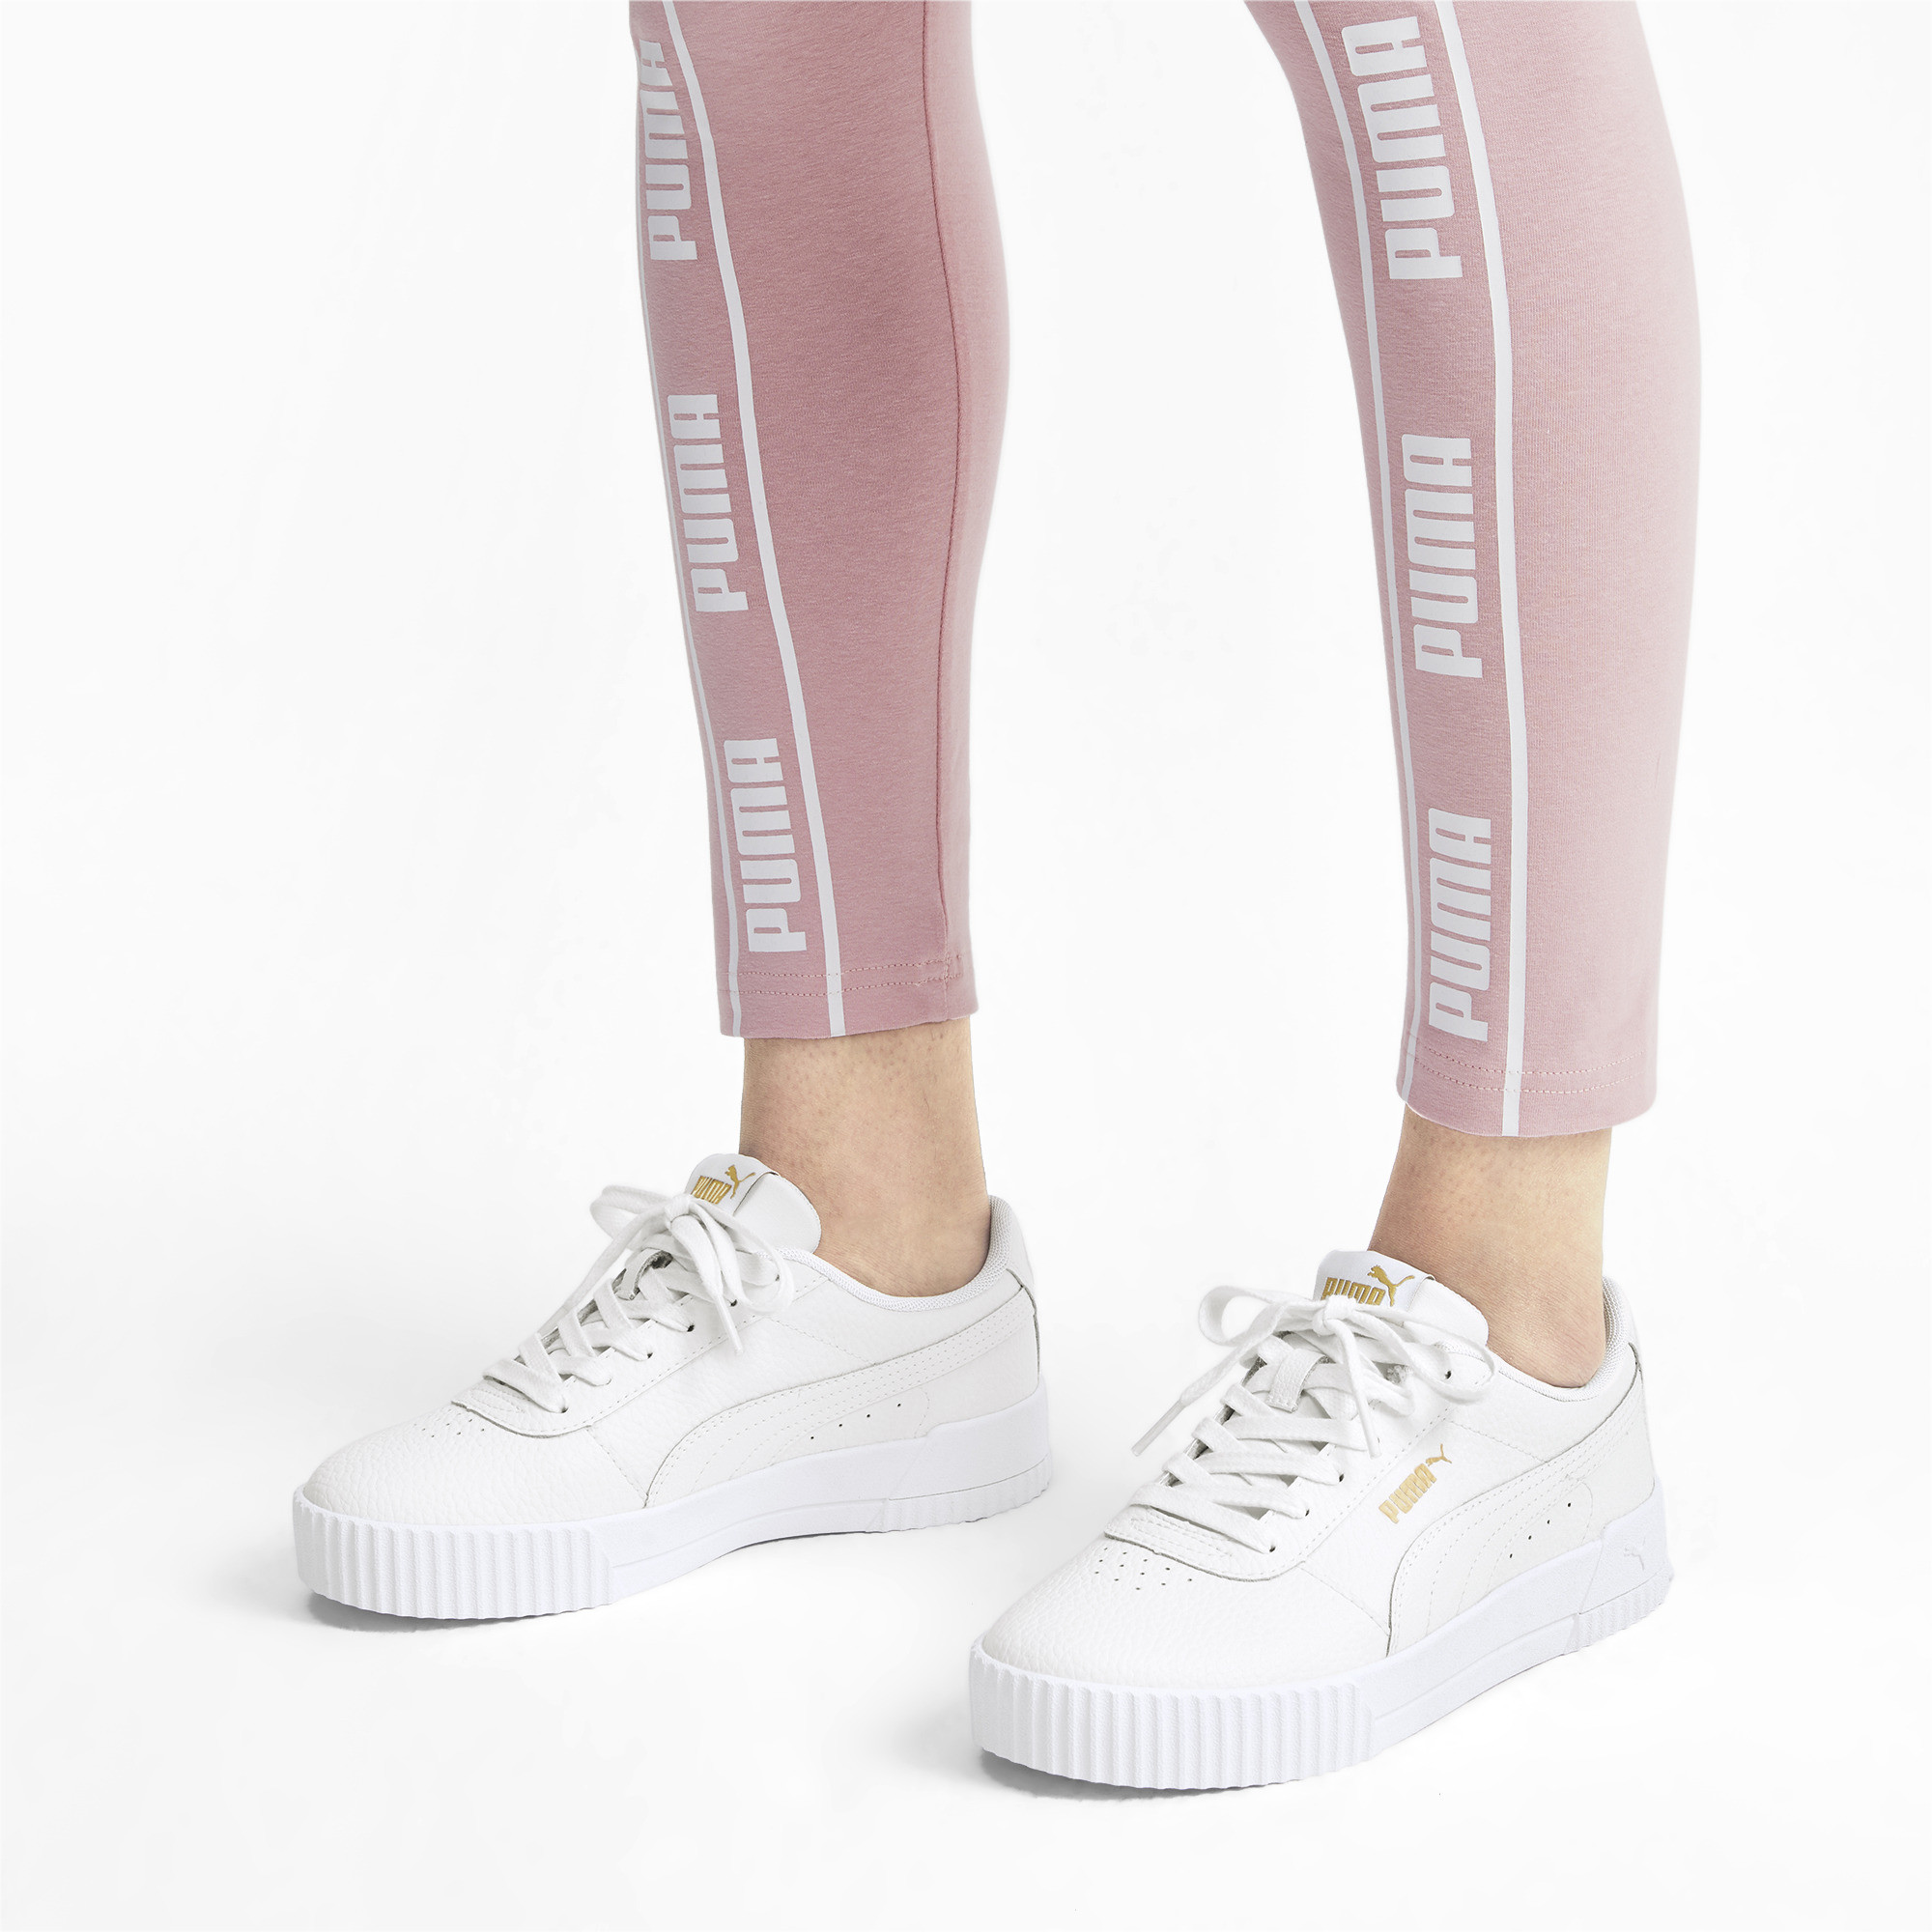 PUMA-Women-039-s-Carina-Lux-Leather-Sneakers thumbnail 5